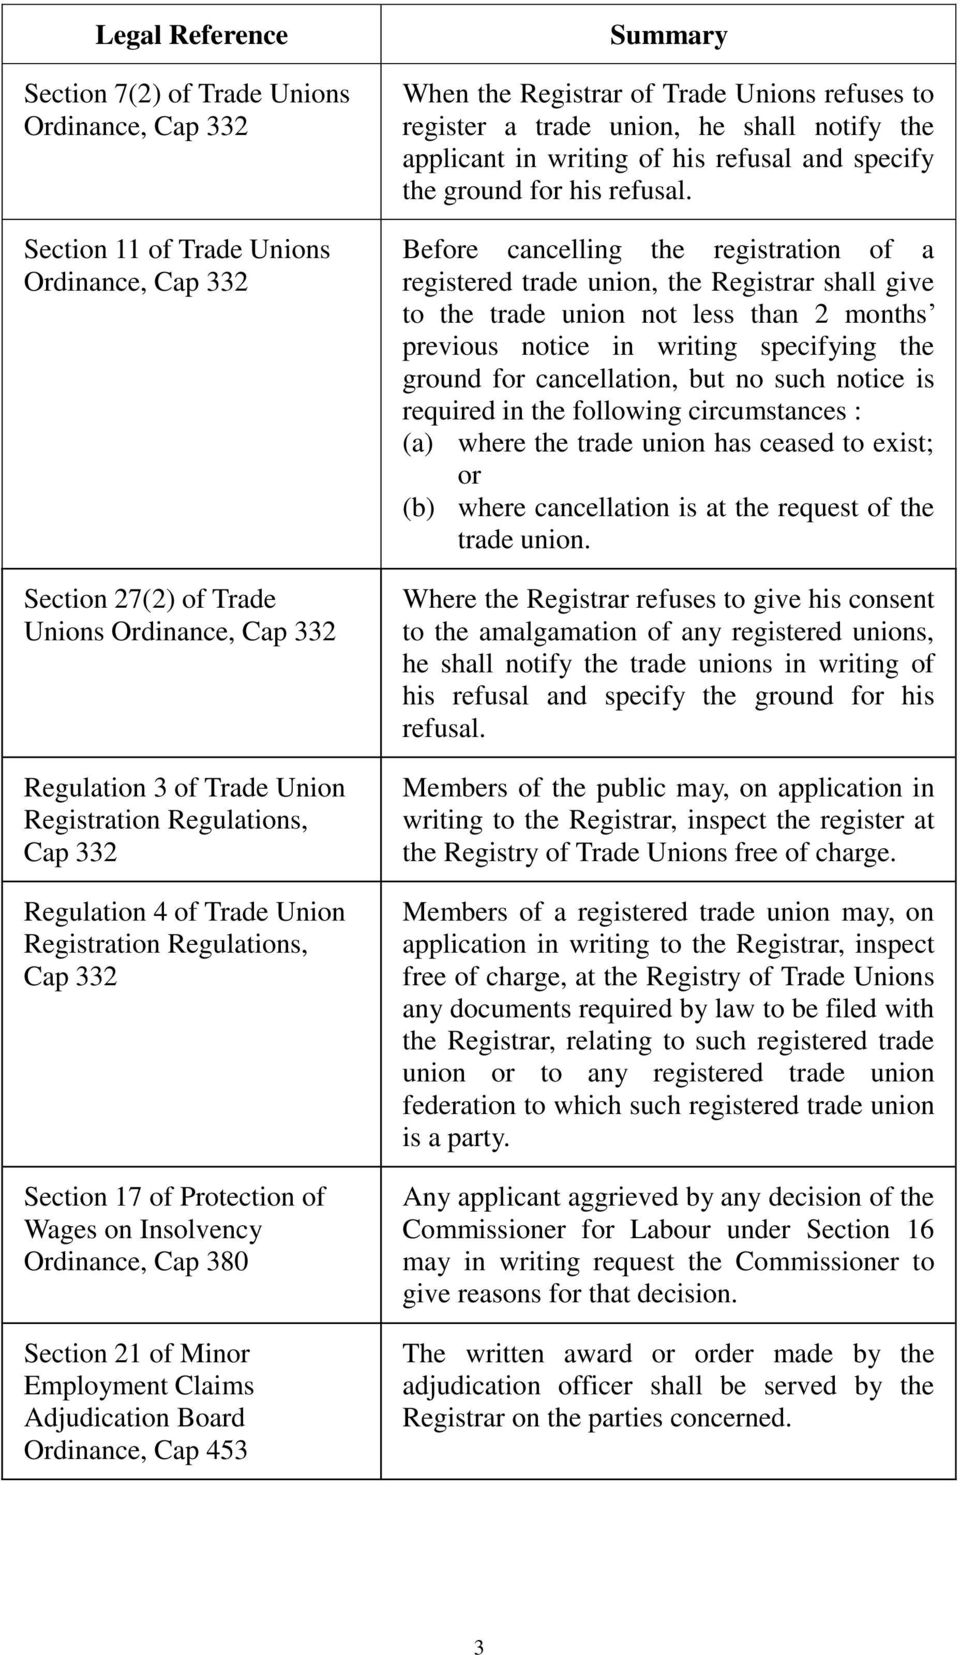 Ordinance, Cap 453 When the Registrar of Trade Unions refuses to register a trade union, he shall notify the applicant in writing of his refusal and specify the ground for his refusal.